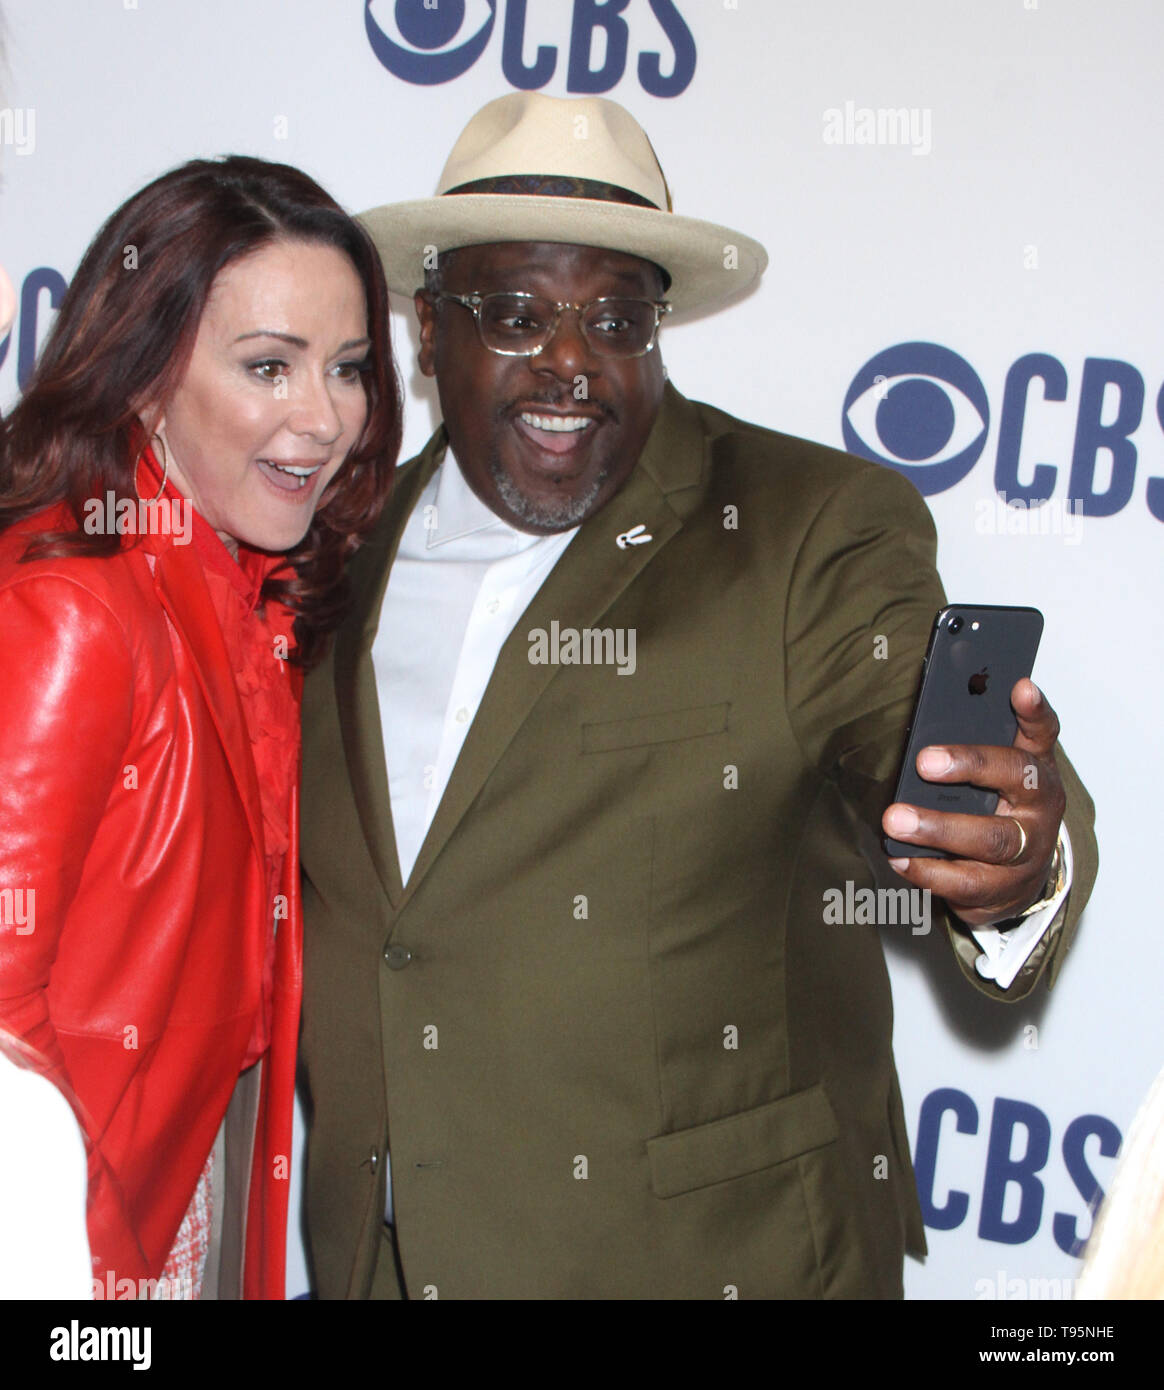 March 15,  2019  Patricia Heaton, Cedric the Entertainer  attend  2019 CBS Upfront  at the Plaza Todd English Food Hall in New York March 15, 2019  Credit:RW/MediaPunch - Stock Image